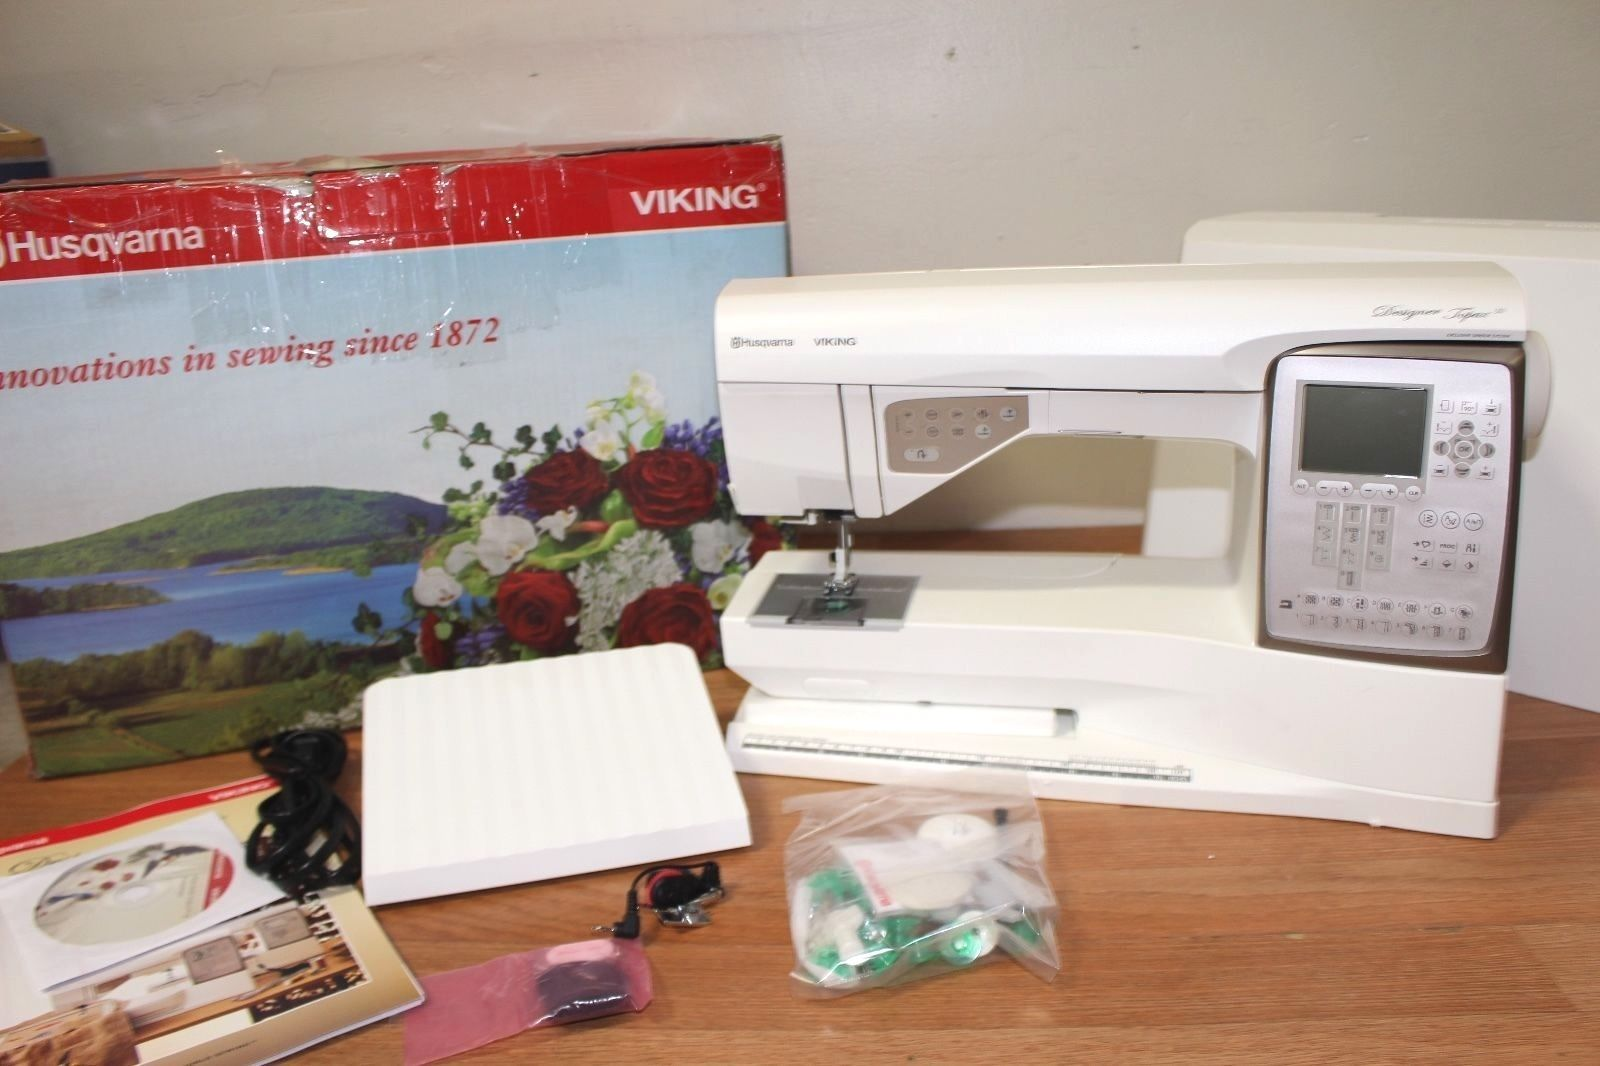 Husqvarna Viking Topaz 30 Computerized Household Sewing Embroidery